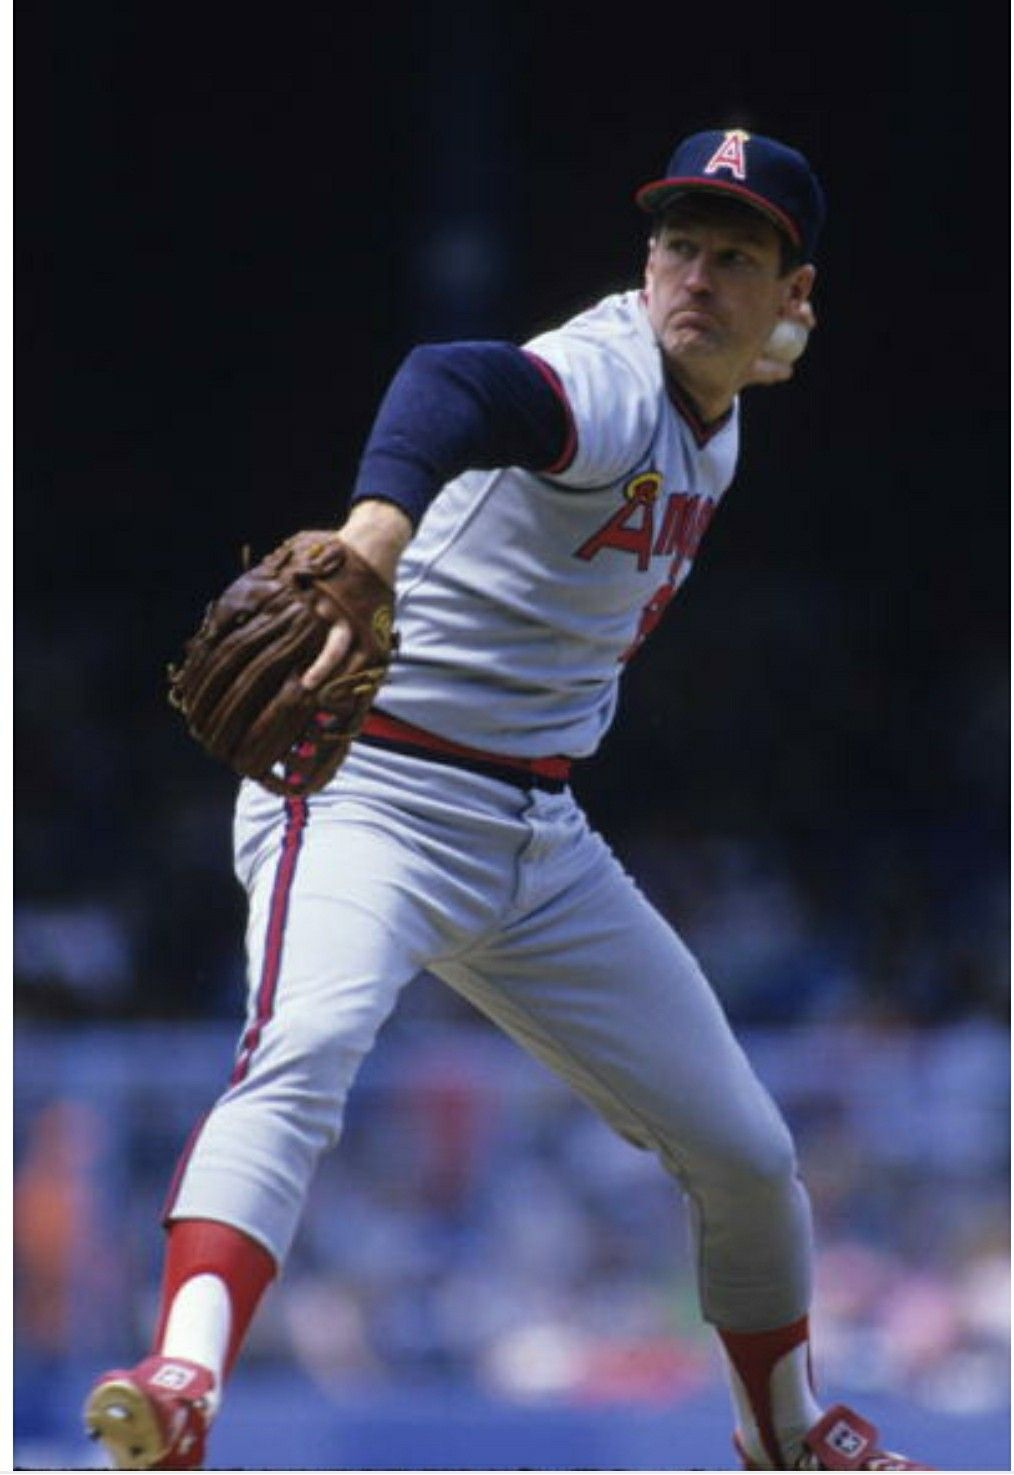 Tommy John (With images) Tommy john, Mlb games, Angels